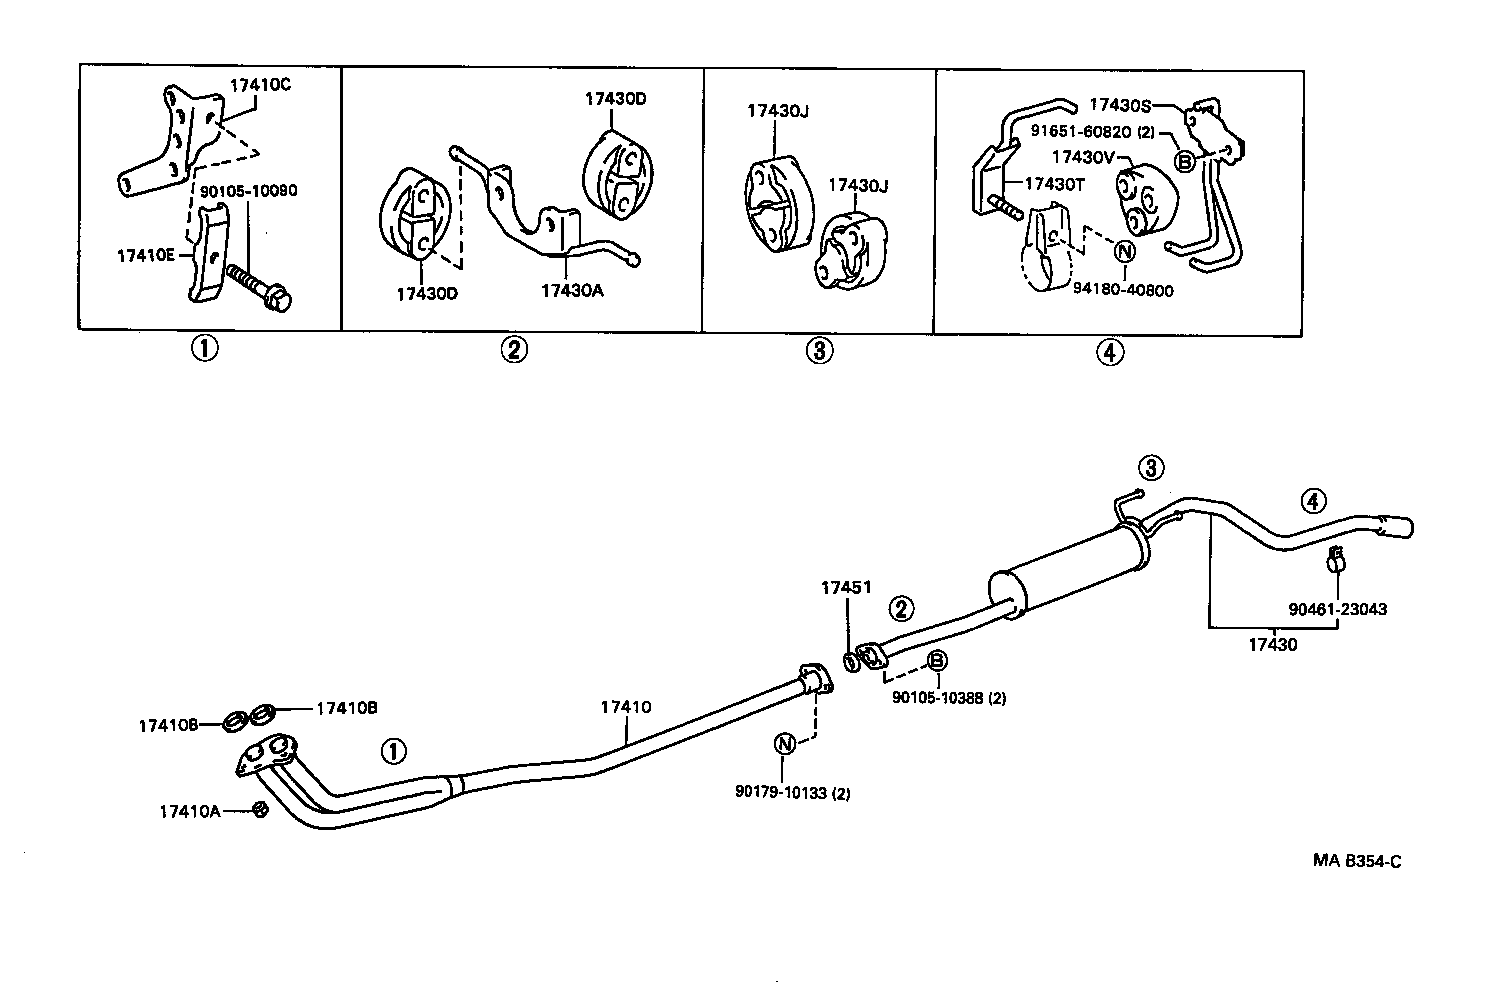 2000 Toyota Camry Exhaust Diagram Schematics 4runner Wiring 1993 System Diagrams Data Base 1992